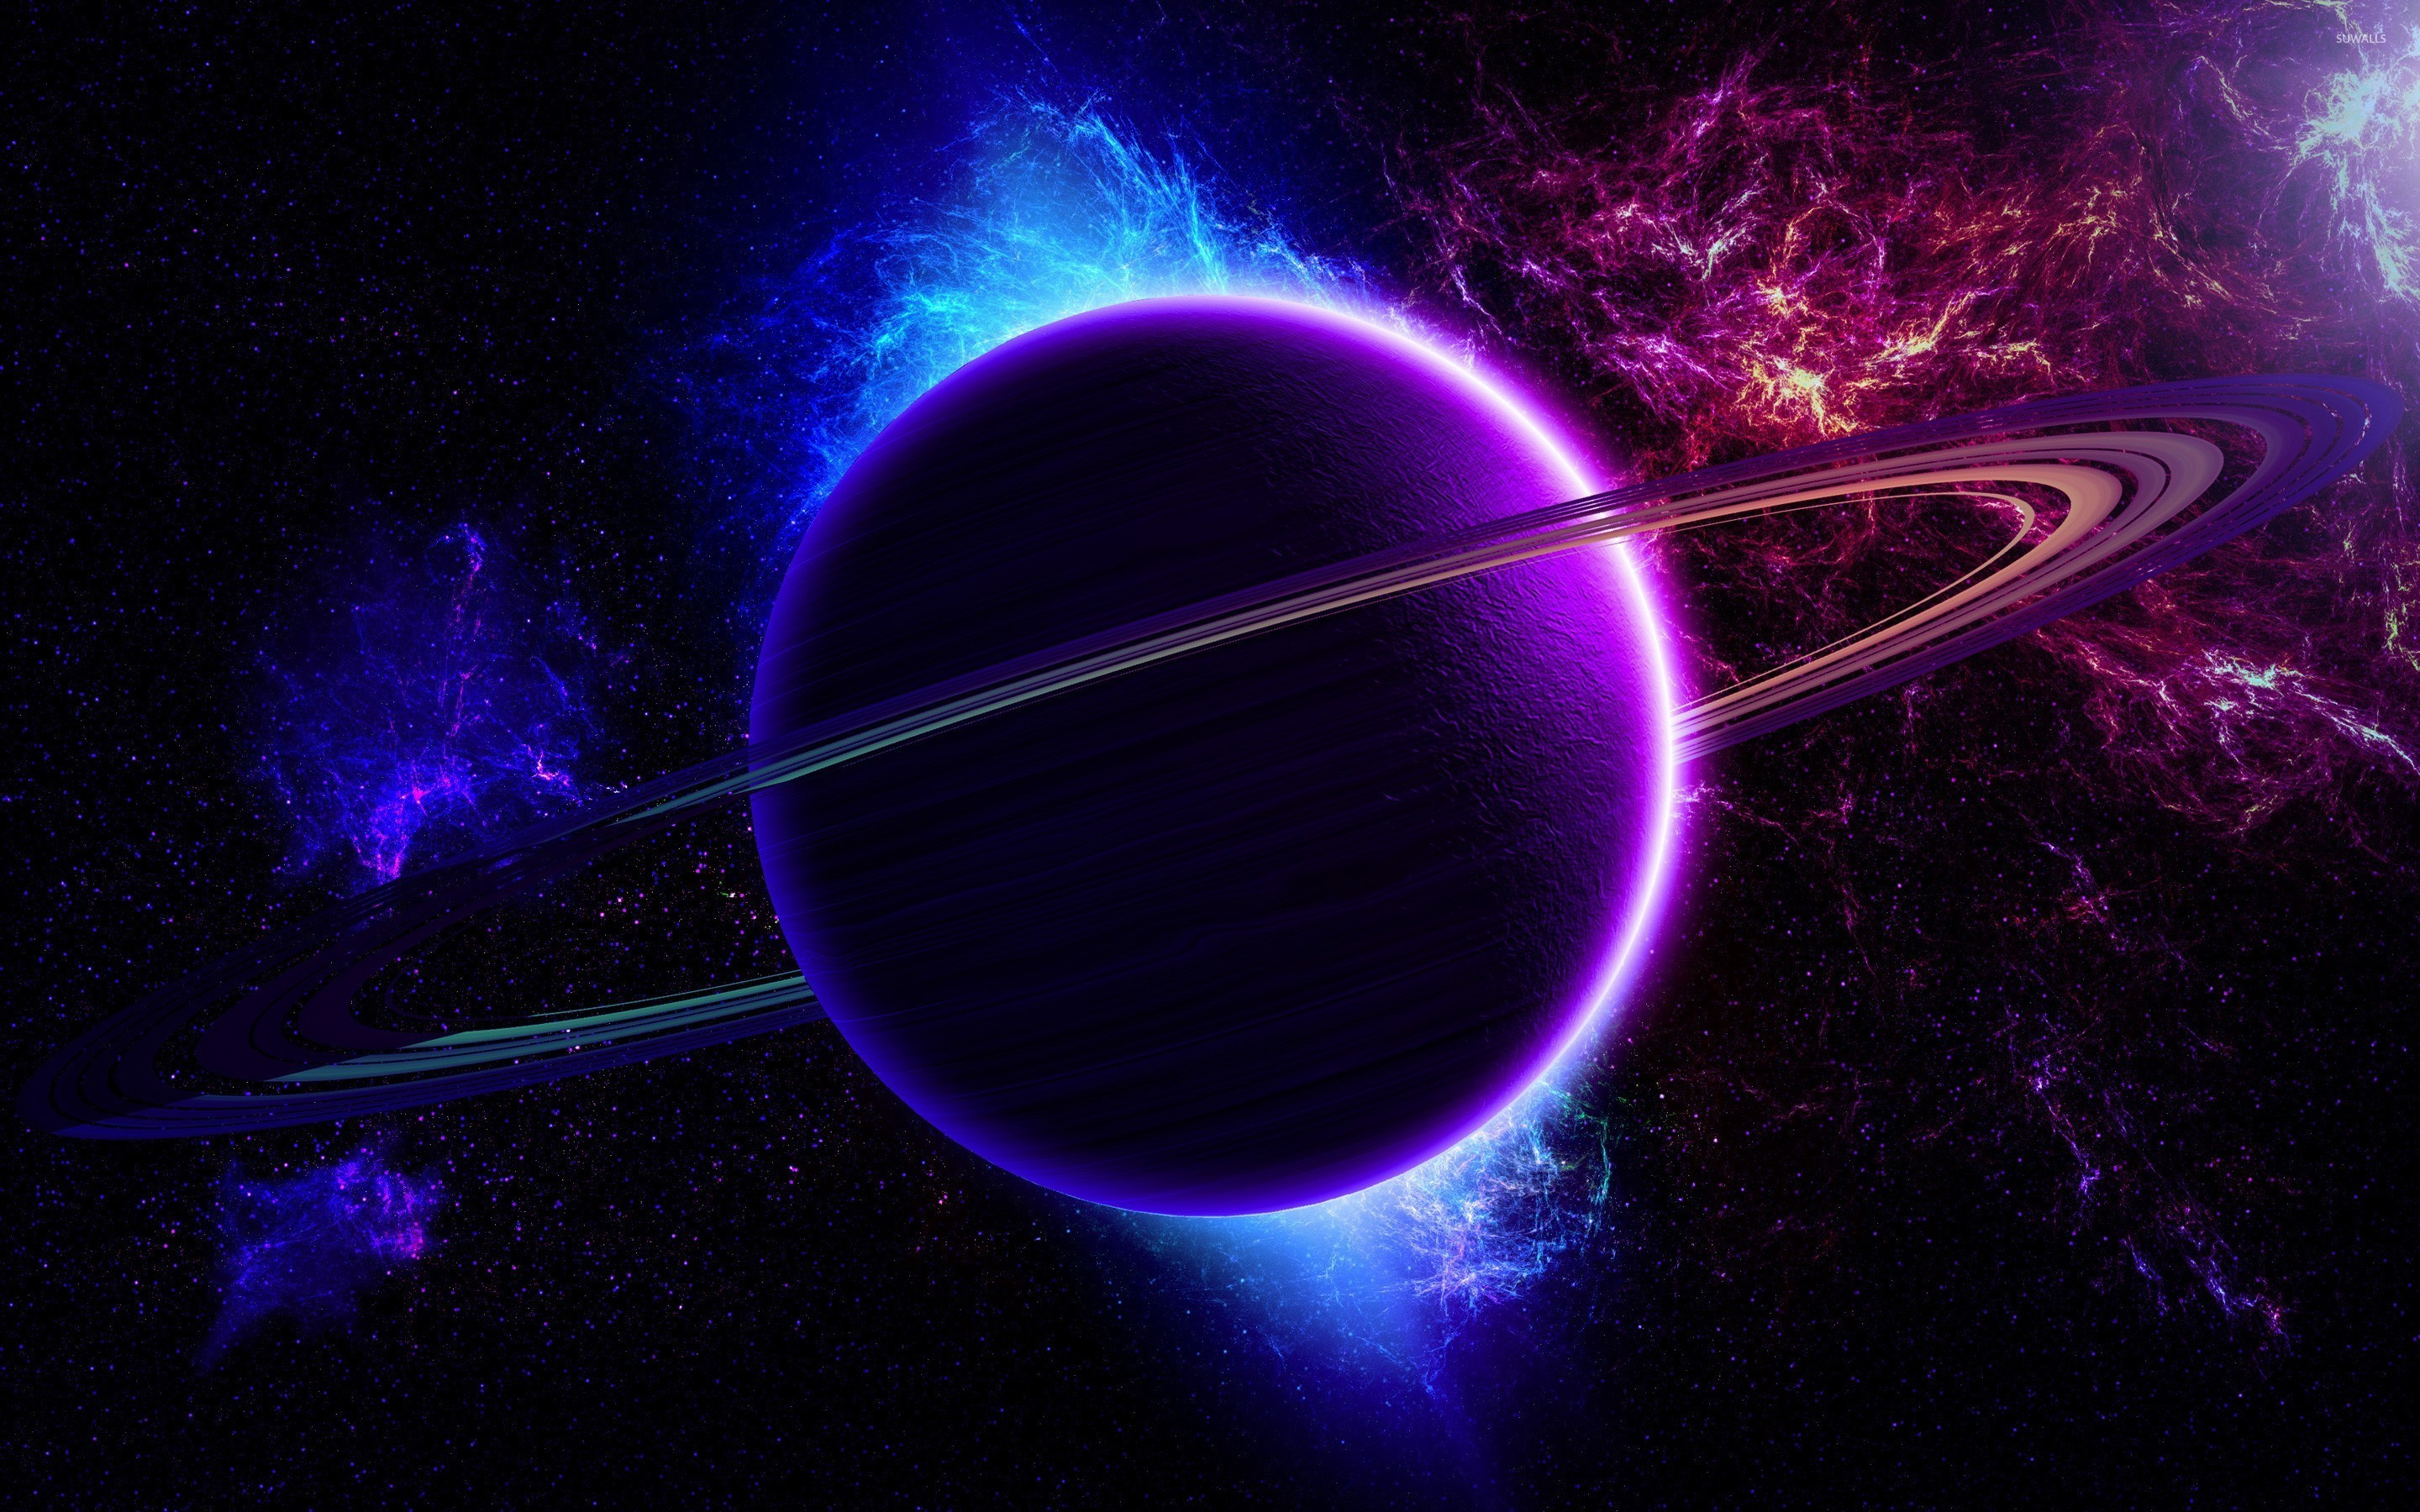 Fantasy Planets Wallpaper (80+ Images